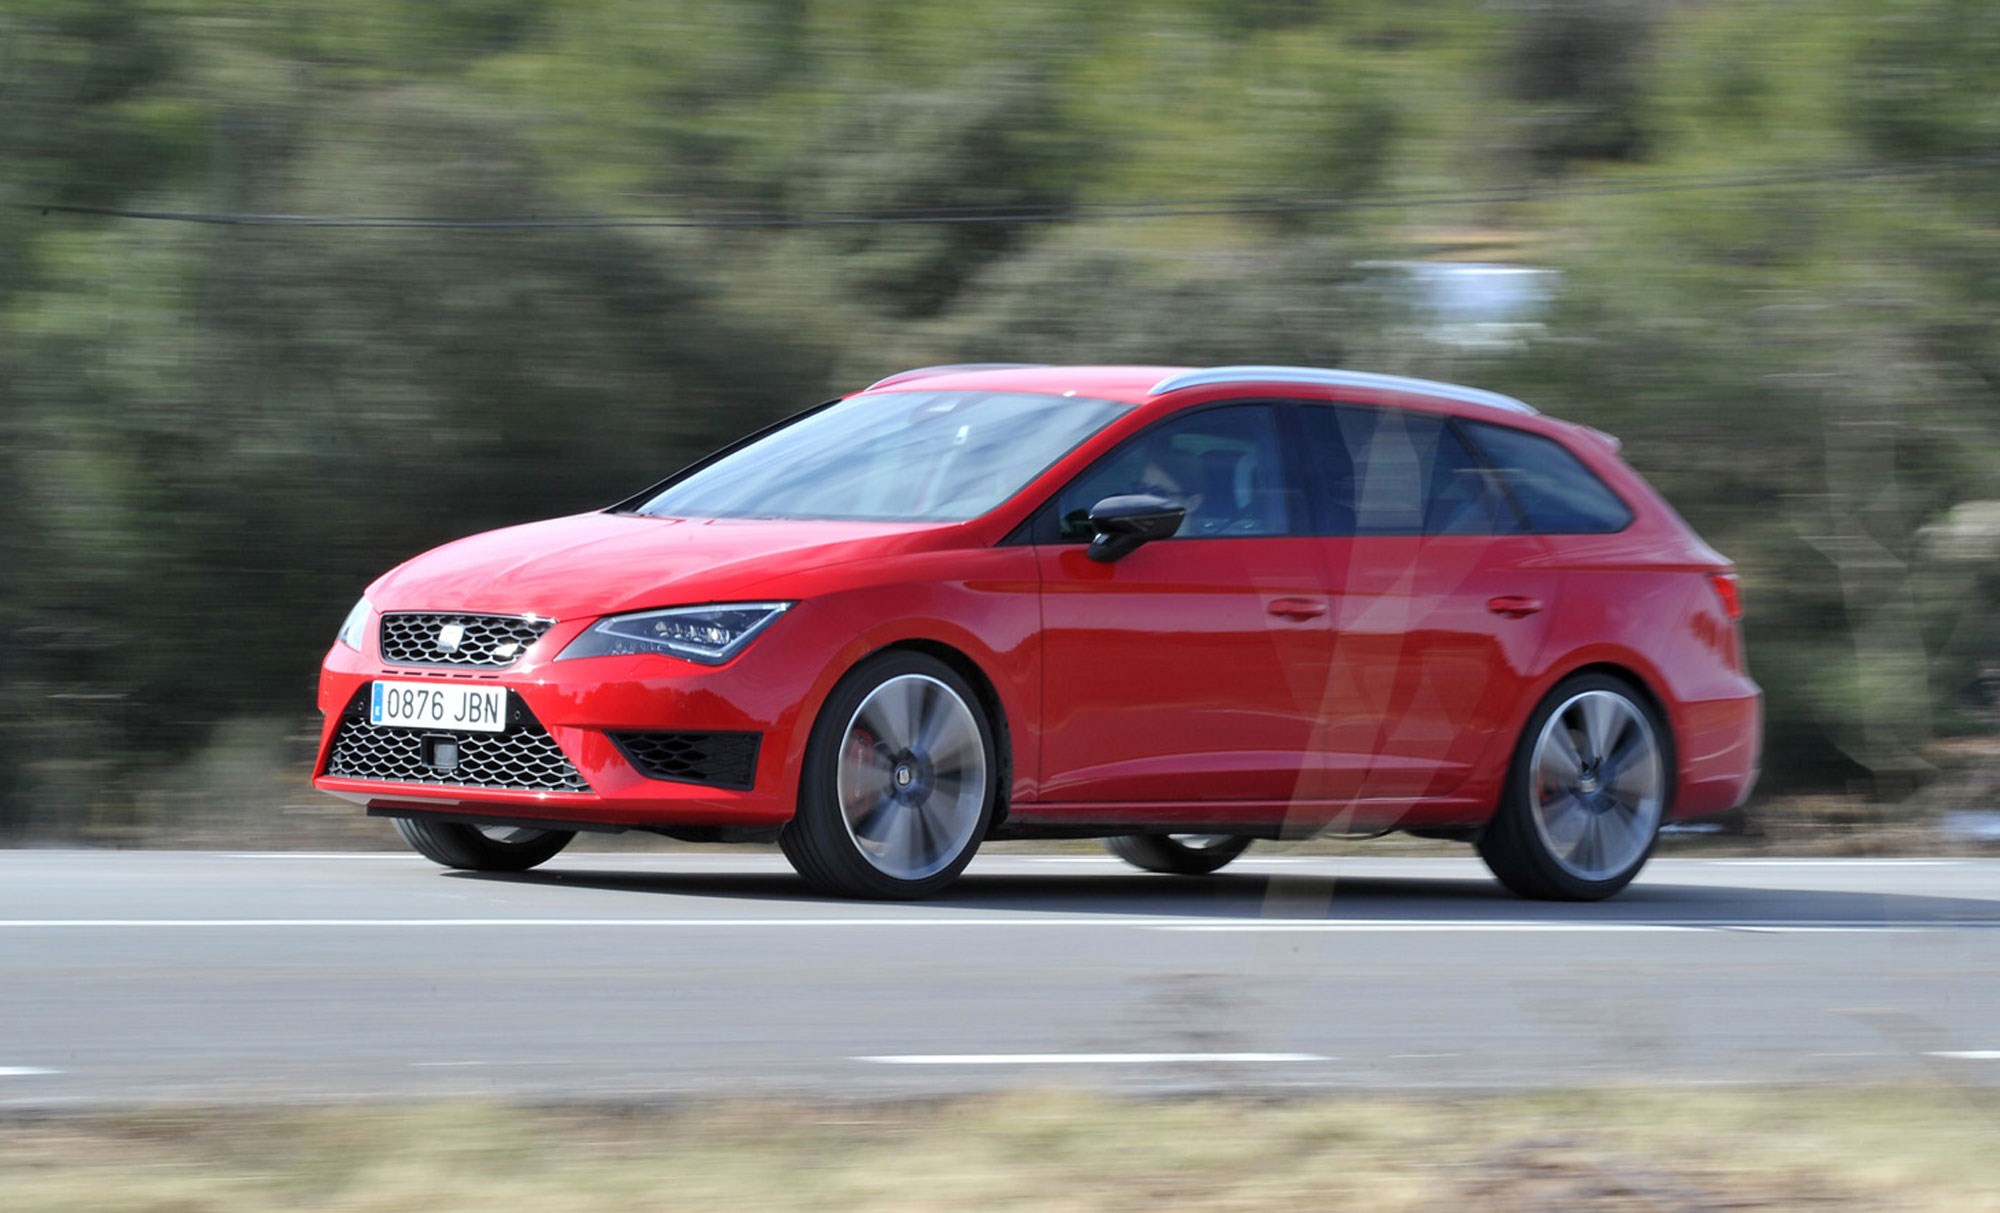 seat leon st cupra 280 2015 review car magazine. Black Bedroom Furniture Sets. Home Design Ideas